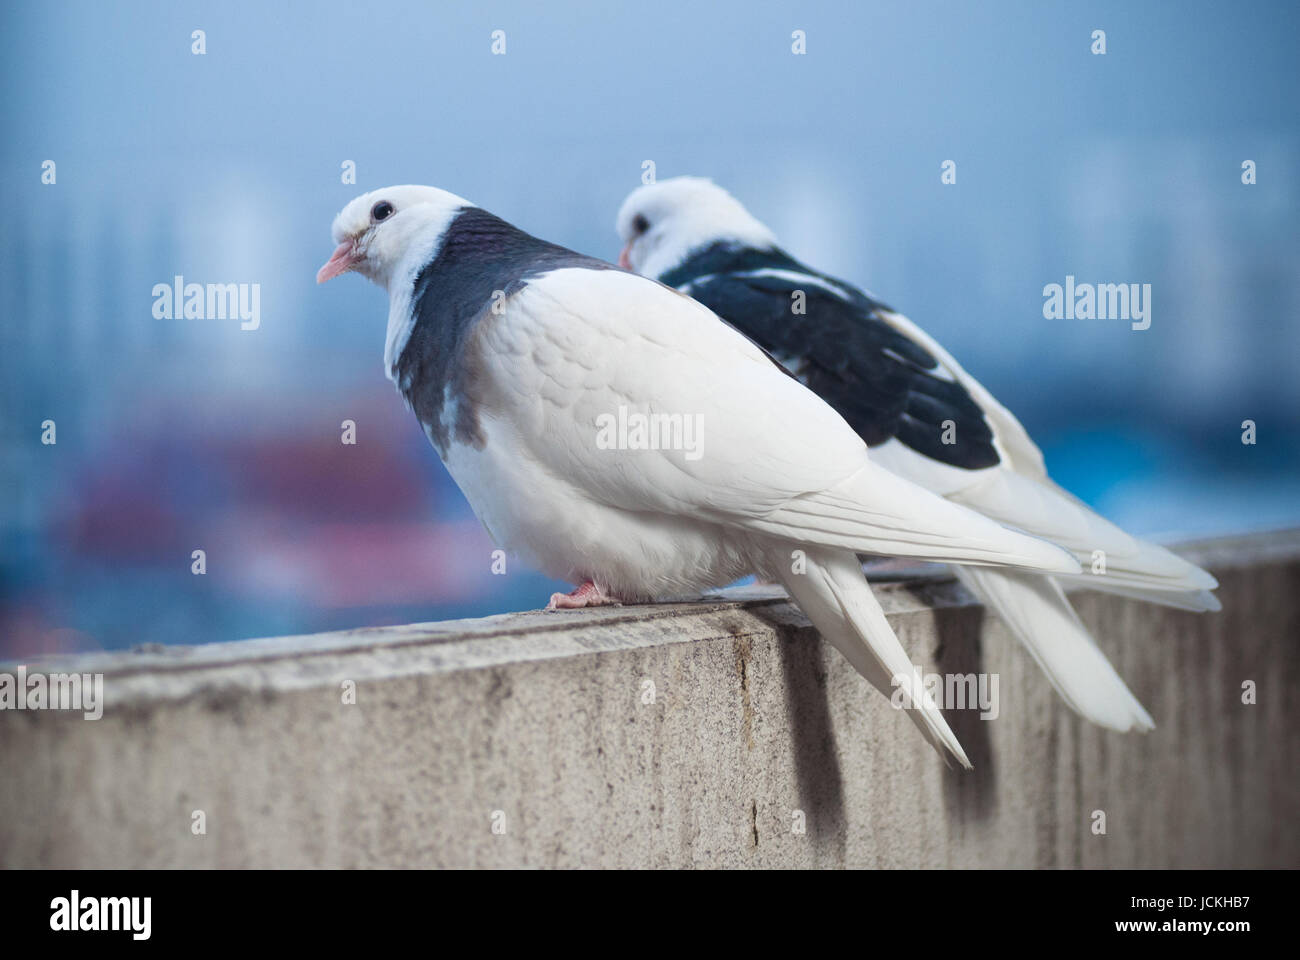 two pigeon stockfotos two pigeon bilder seite 6 alamy. Black Bedroom Furniture Sets. Home Design Ideas